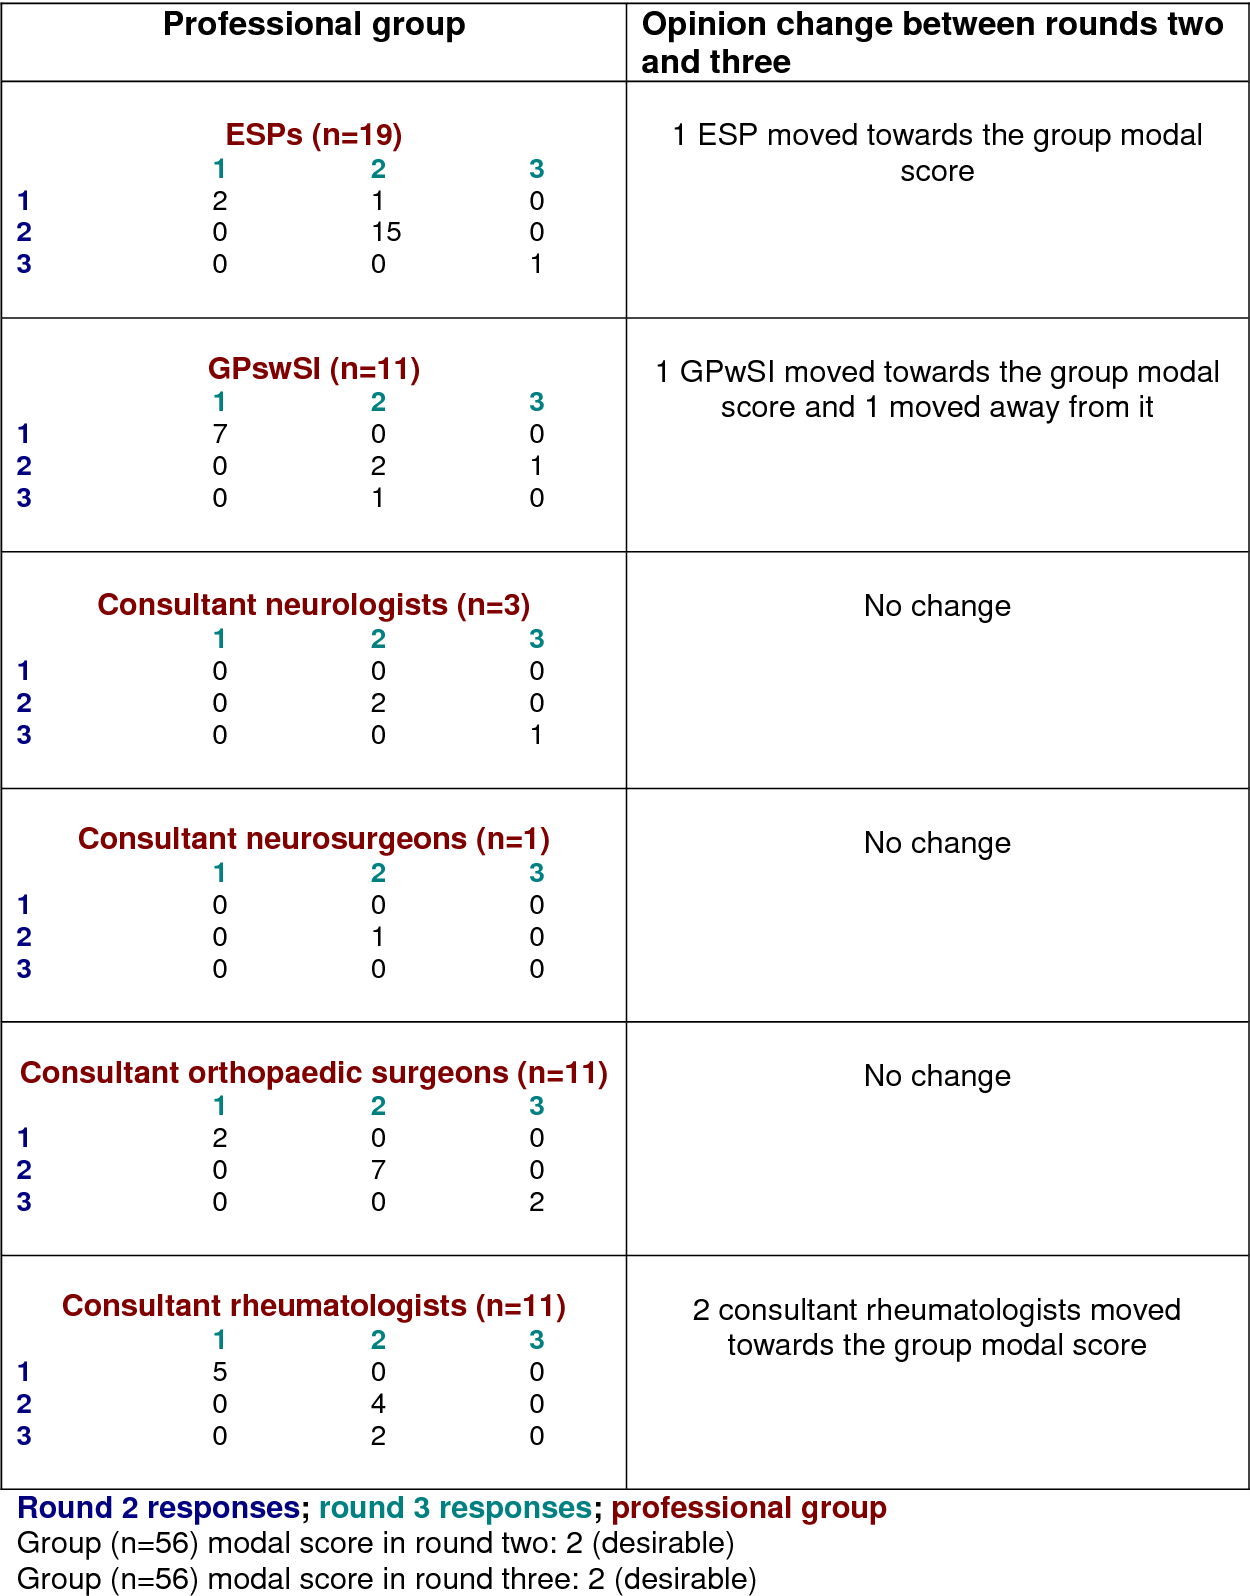 table 9.13